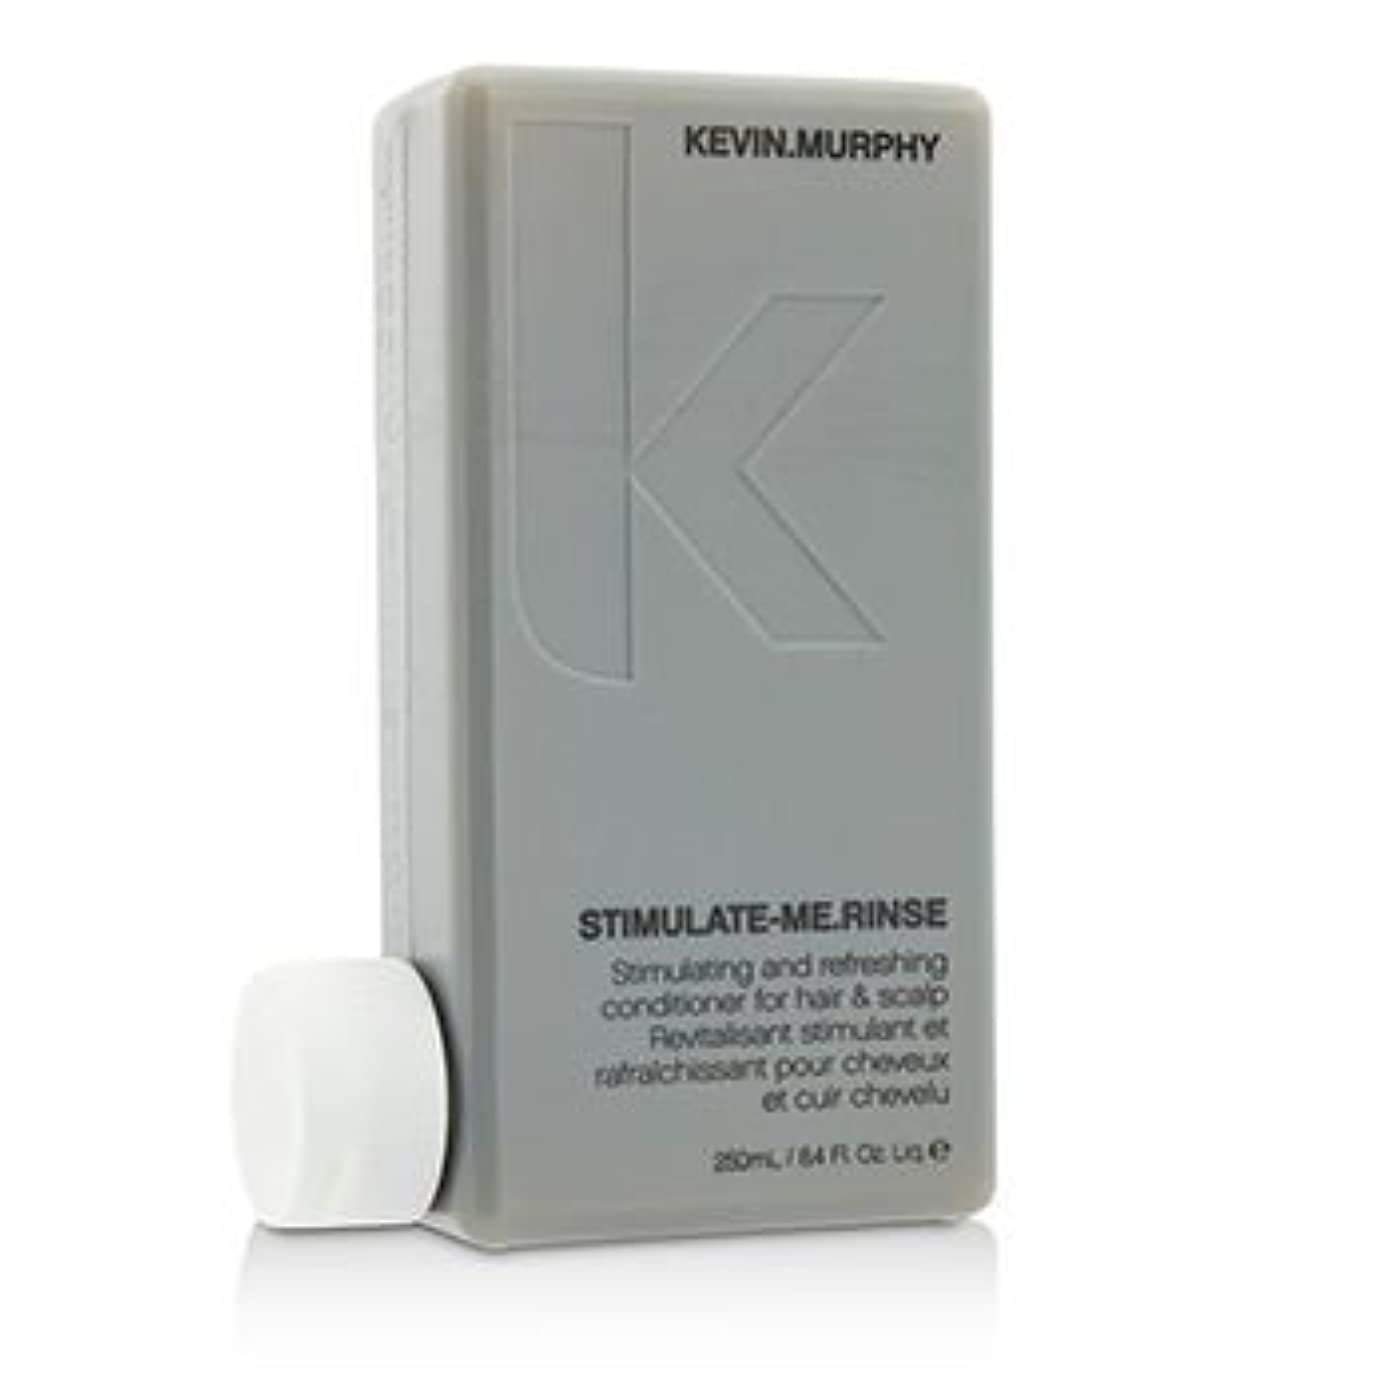 [Kevin.Murphy] Stimulate-Me.Rinse (Stimulating and Refreshing Conditioner - For Hair & Scalp) 250ml/8.4oz